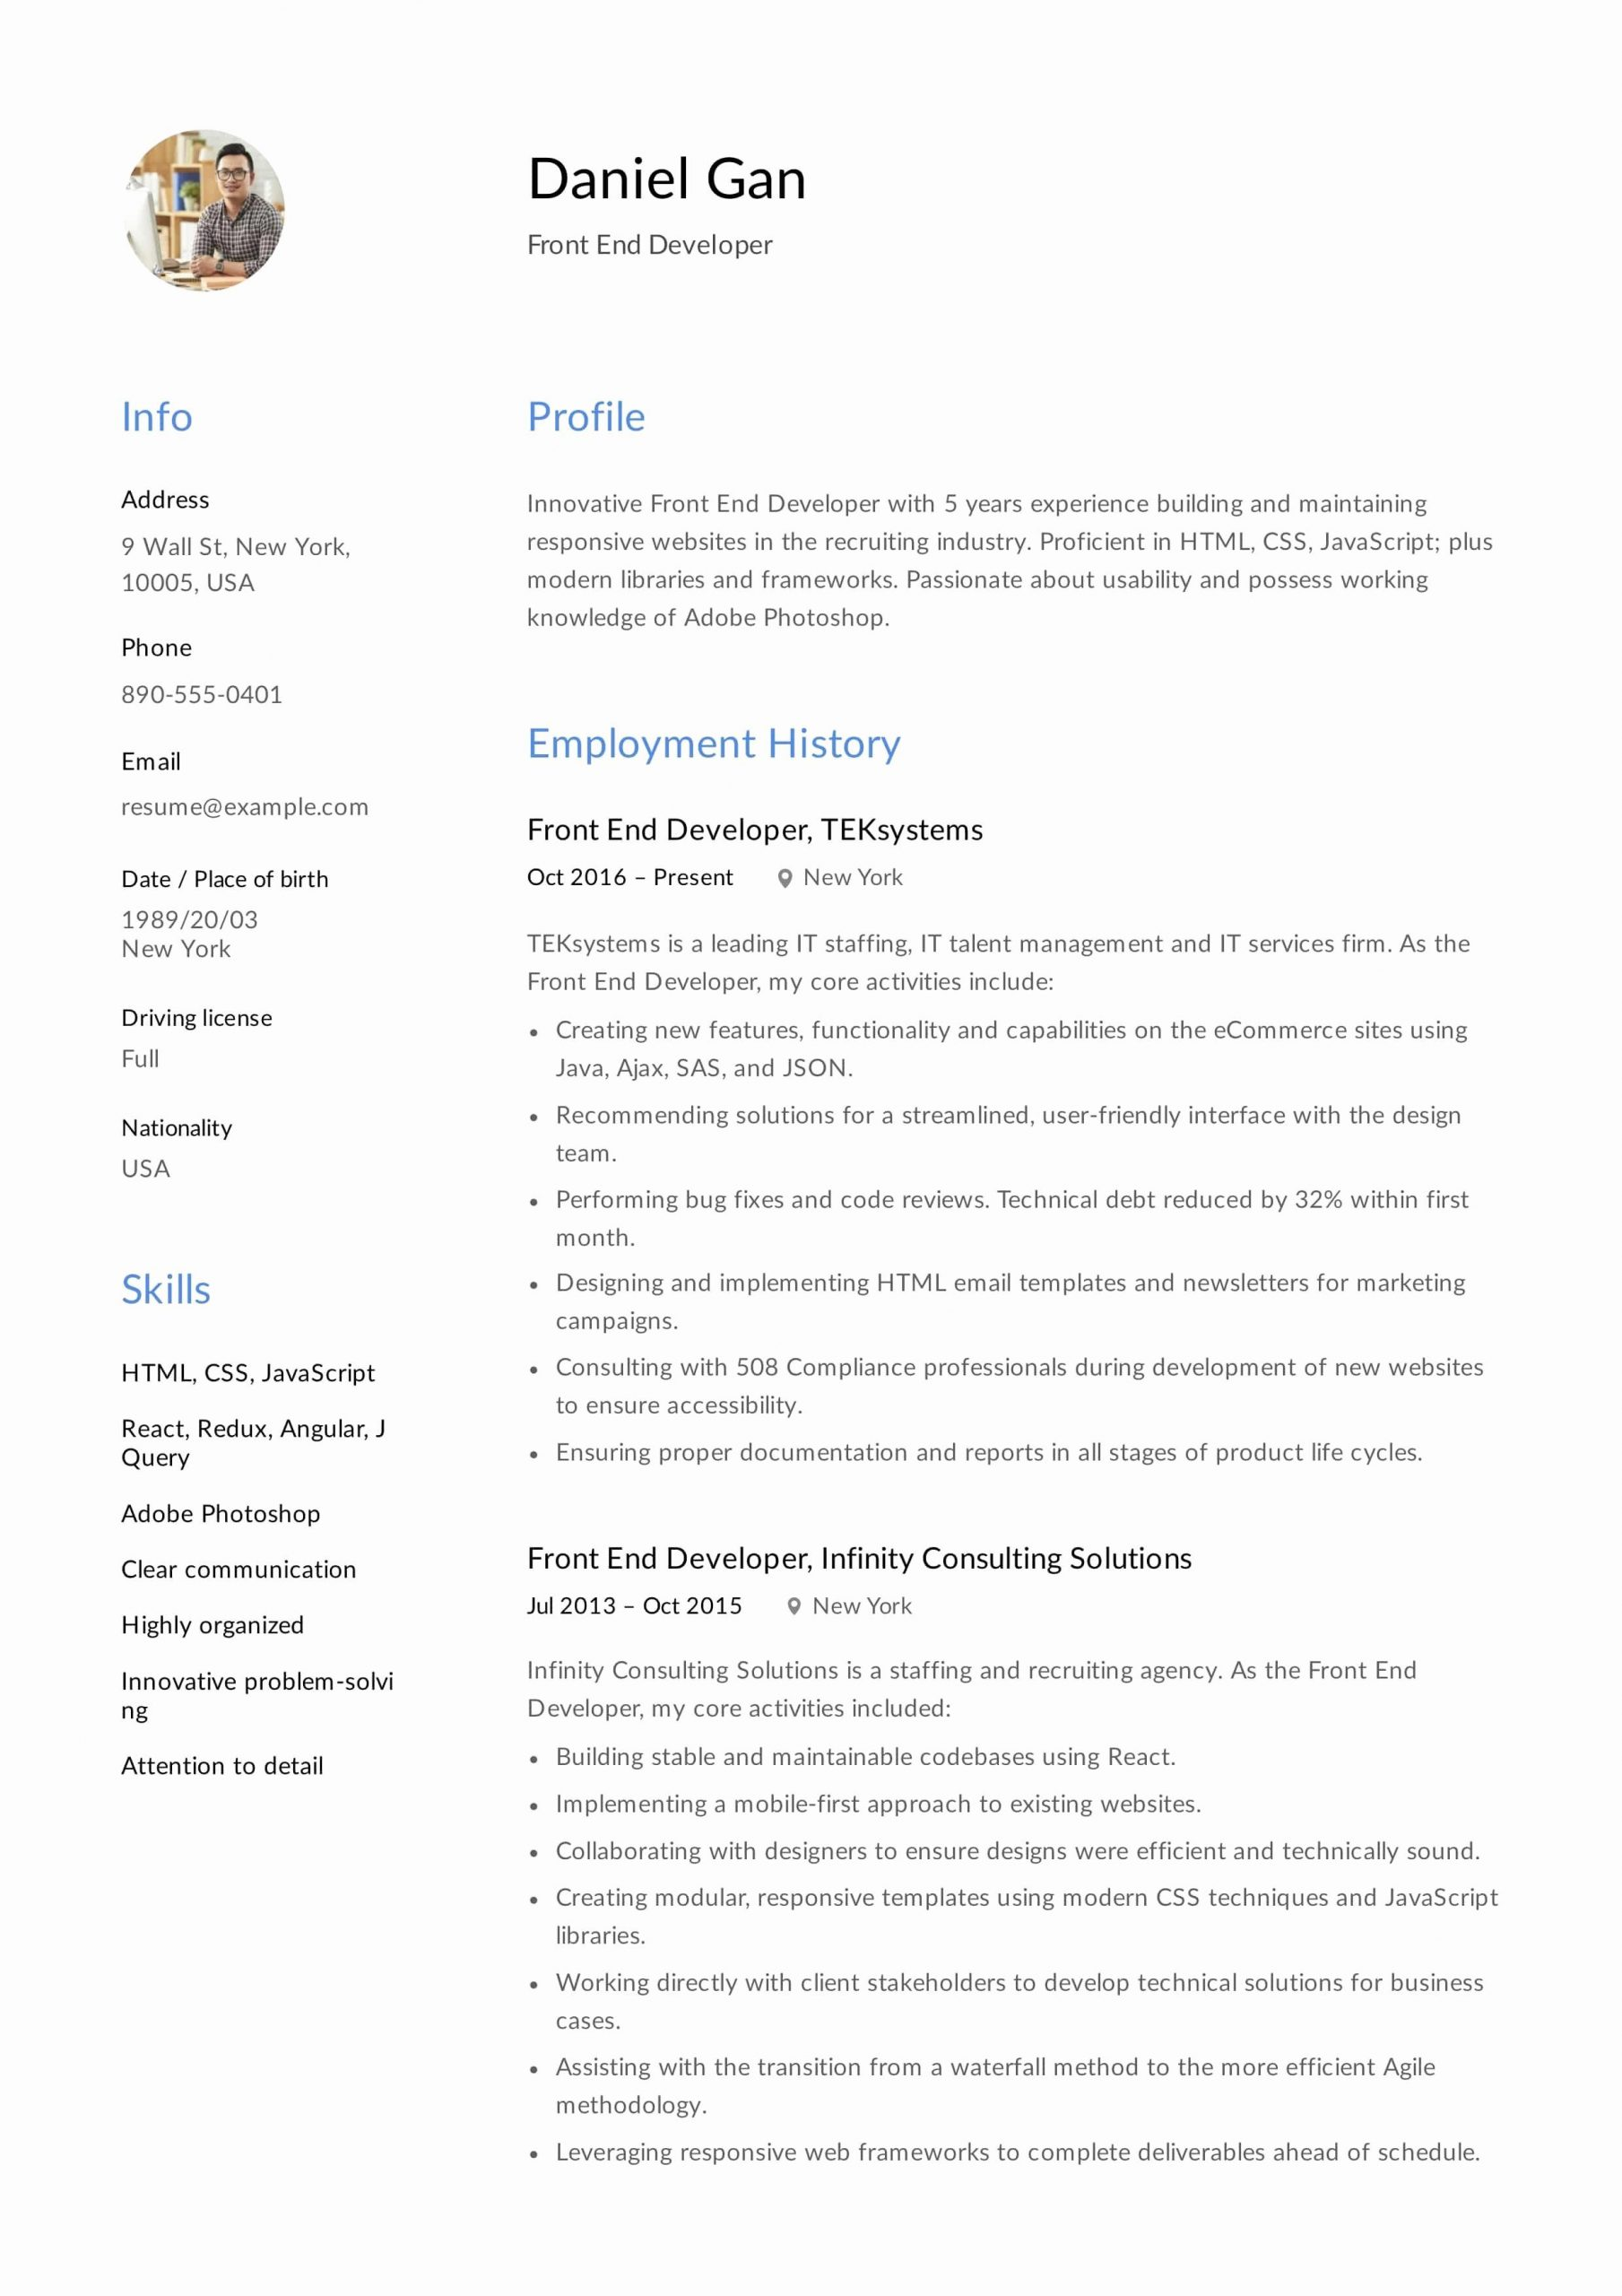 Front End Developer Resume Template Beautiful Guide Front End Developer Resume [ 12 Samples ] Pdf